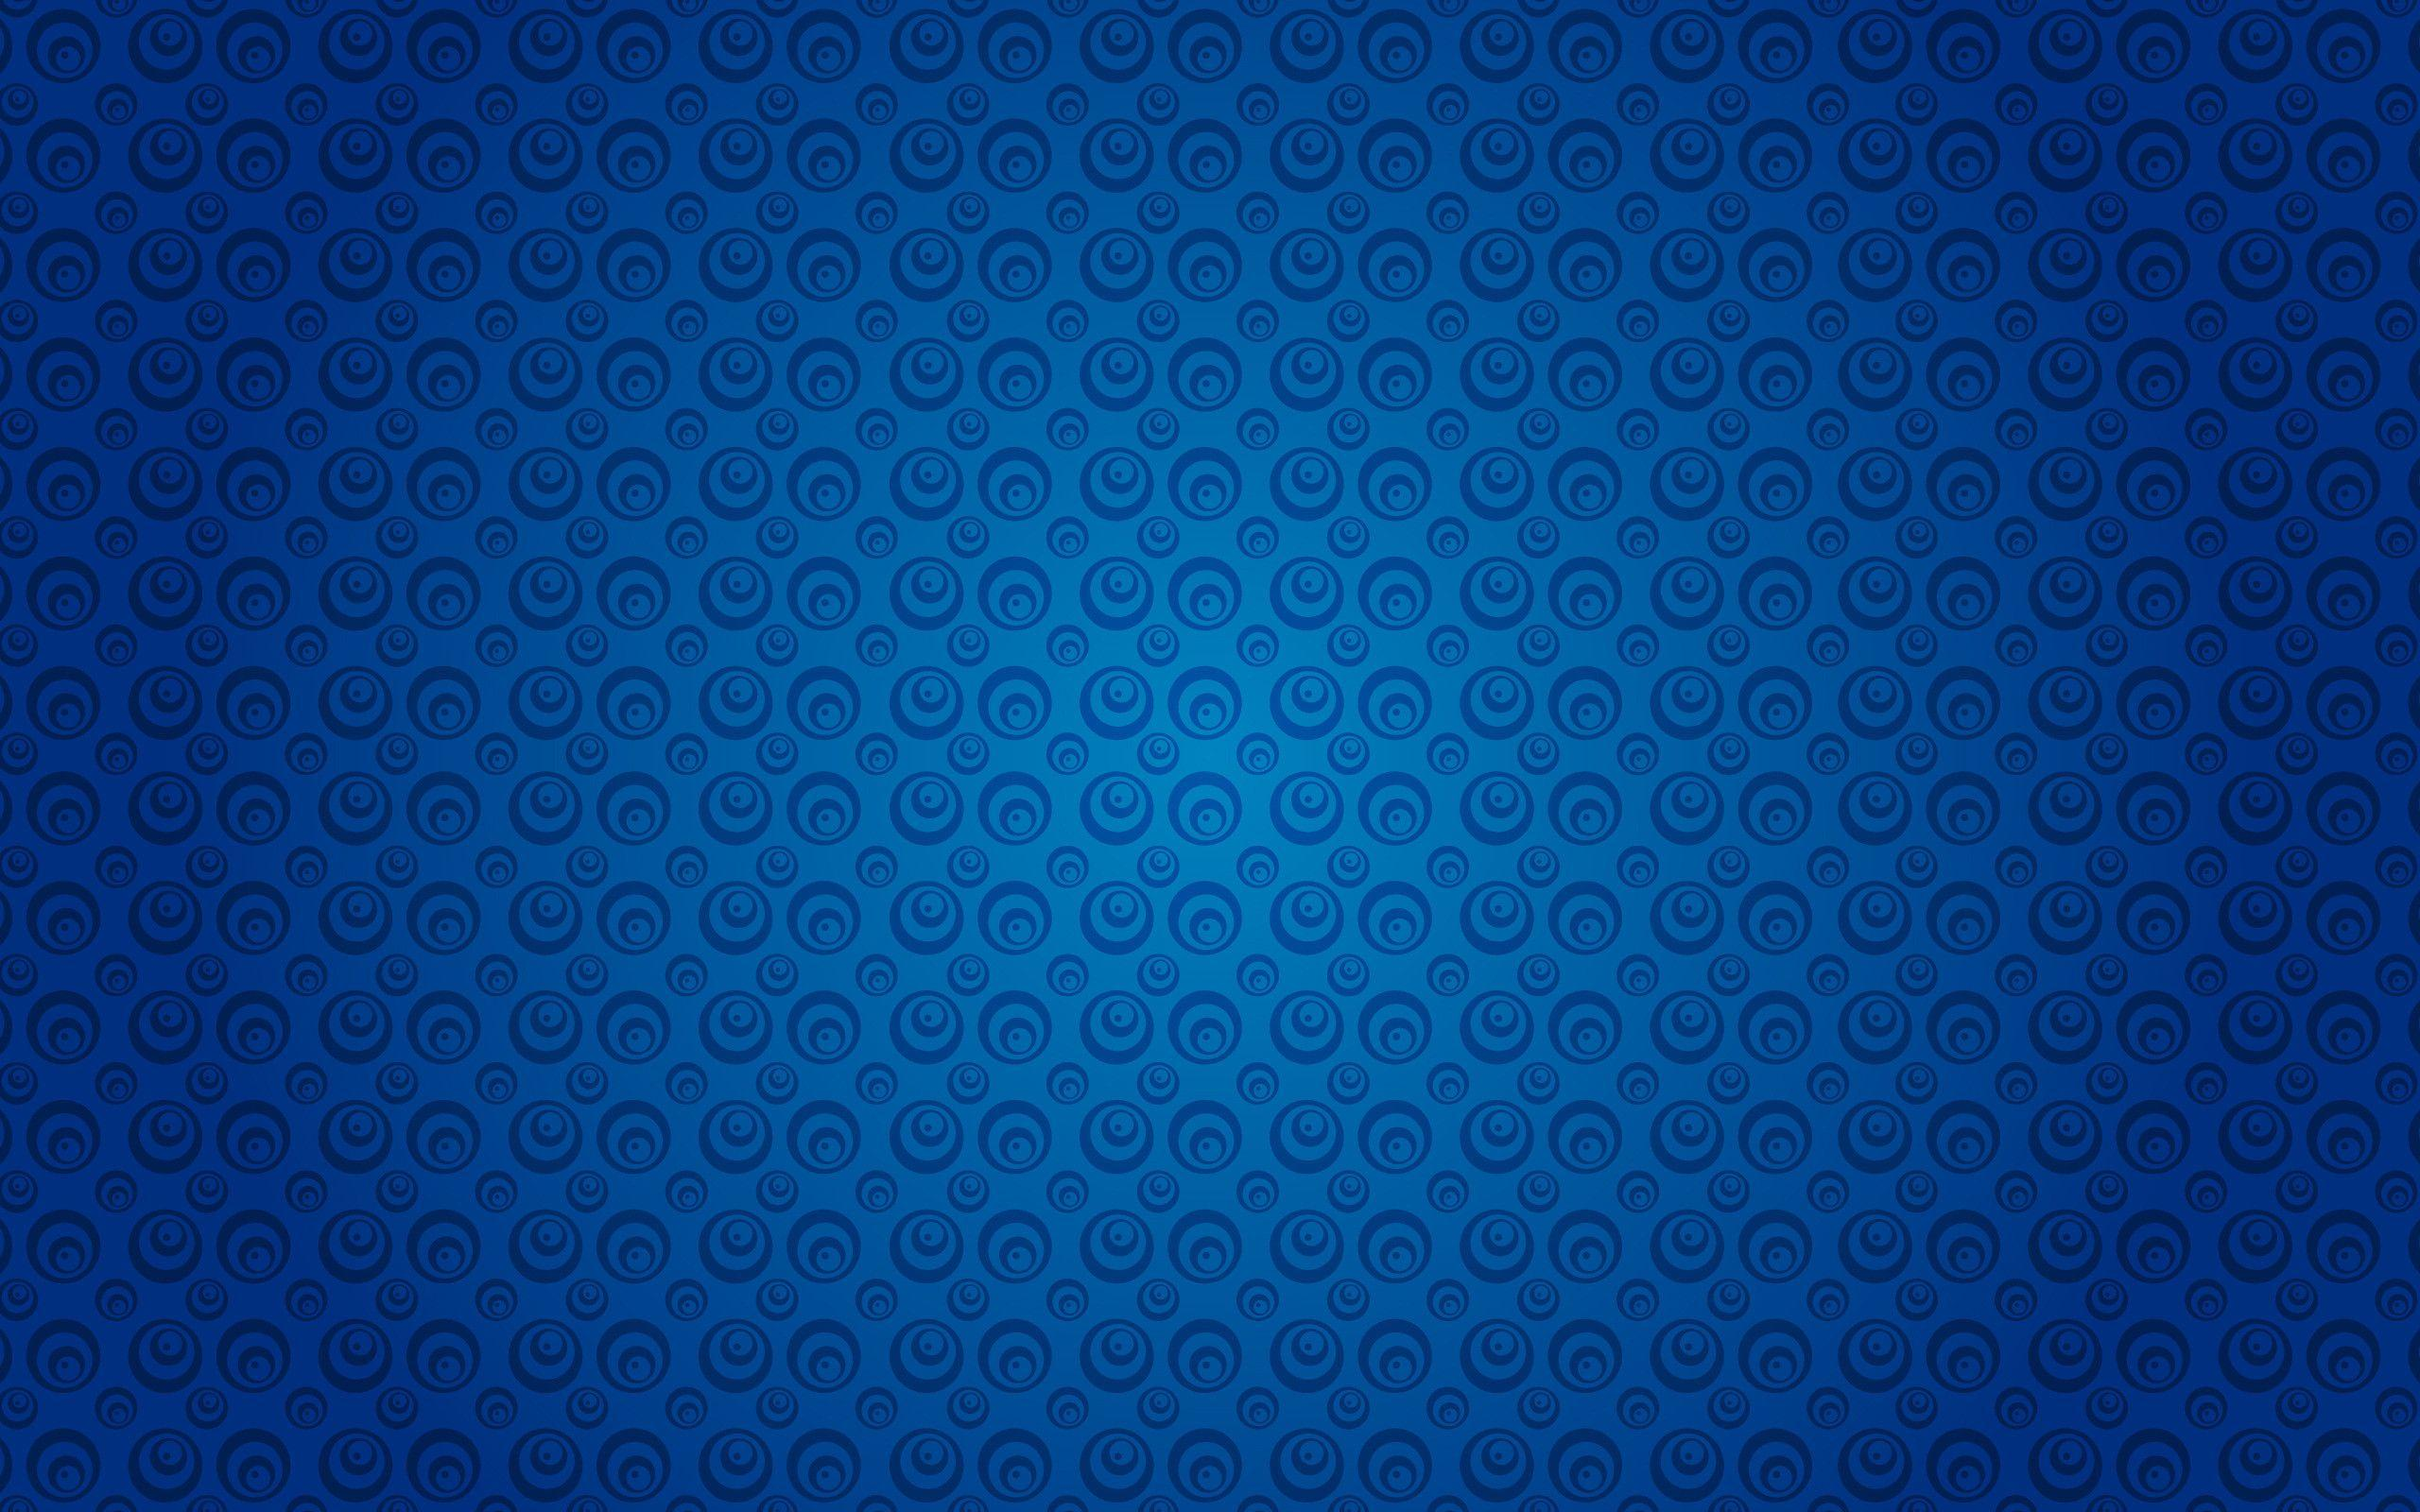 Blue backgrounds